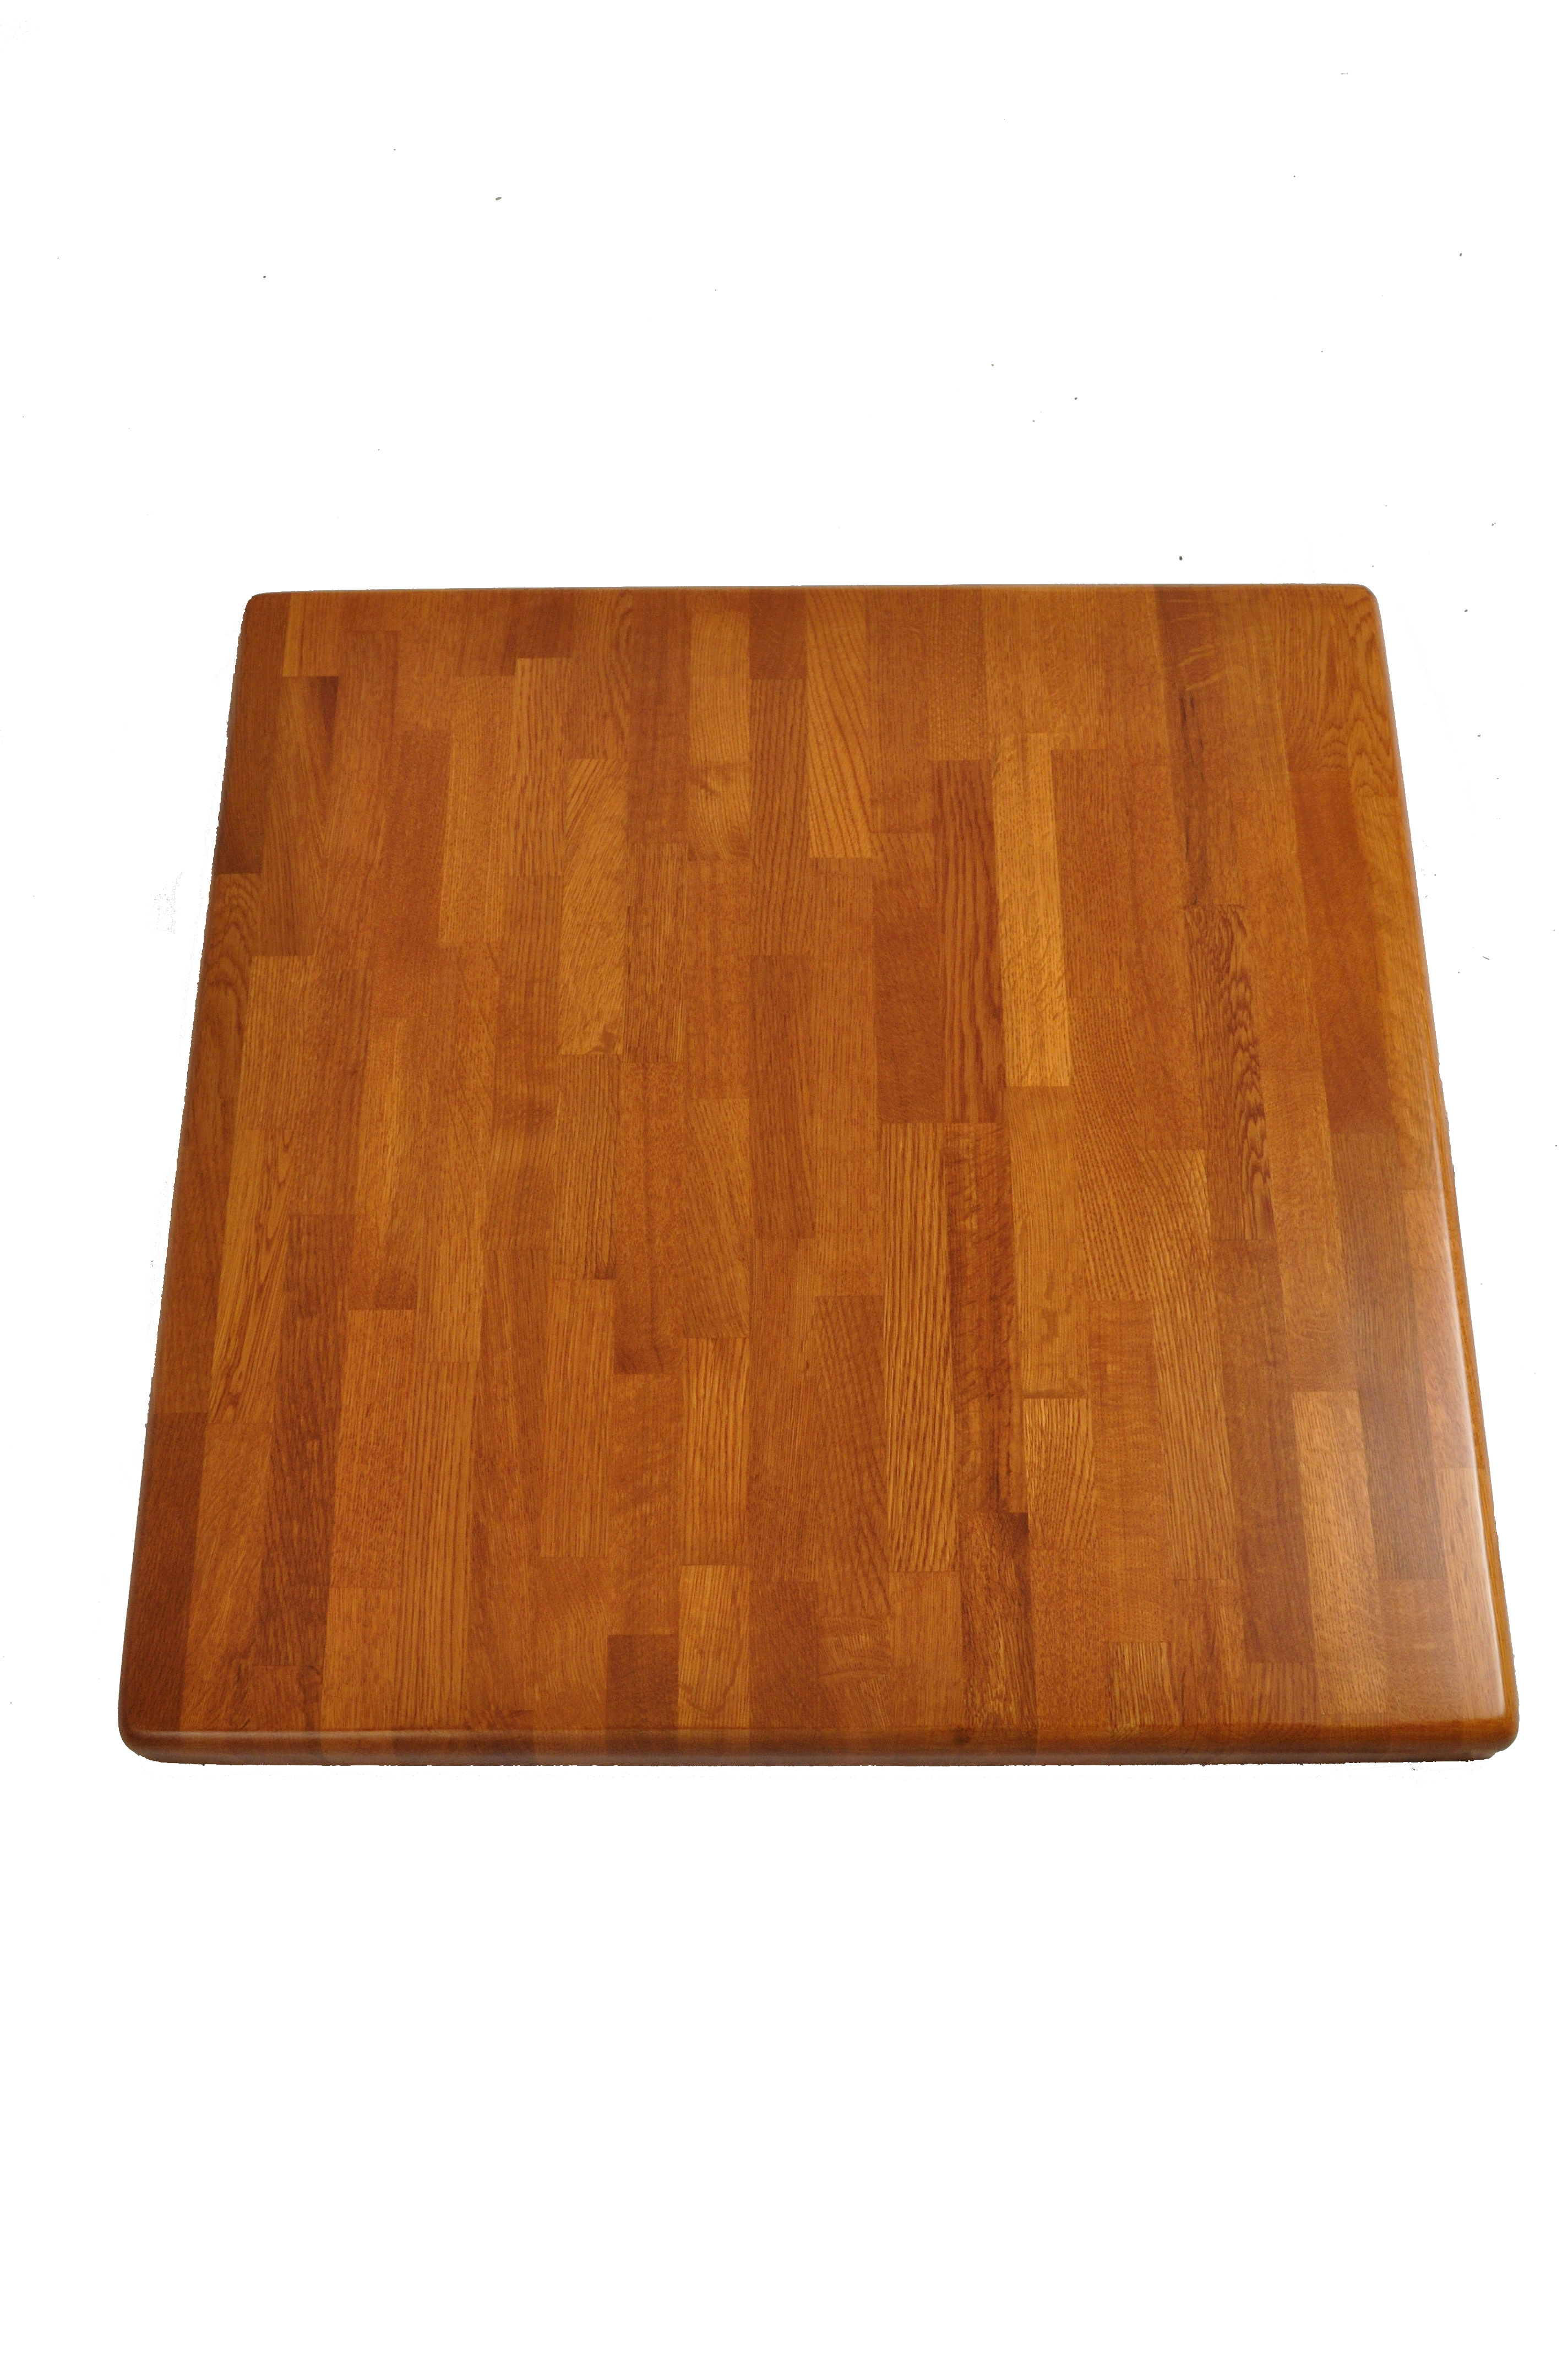 Solid Wood Square Table Top Htwd Commercial Restaurant